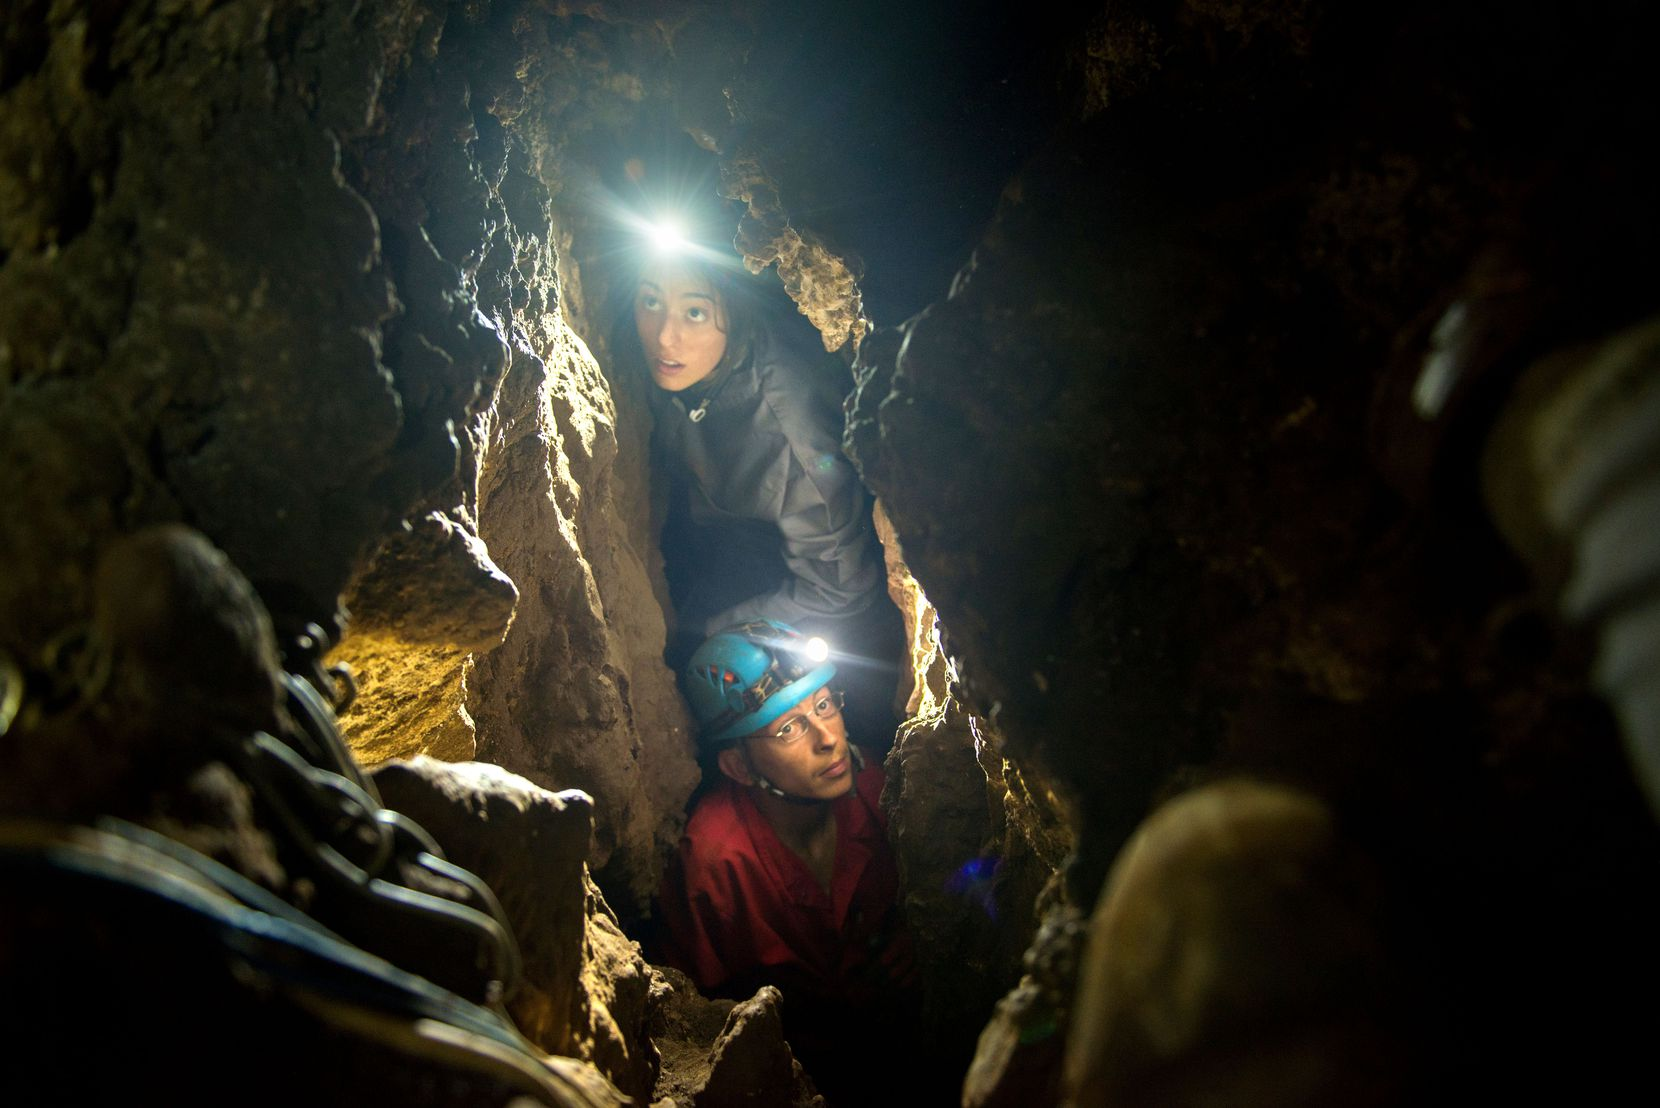 Megan Berger (top, who is Lee Berger's daughter) and Rick Hunter squeeze through an opening as the scientific team ventures deep into the chambers of the Rising Star cave system.